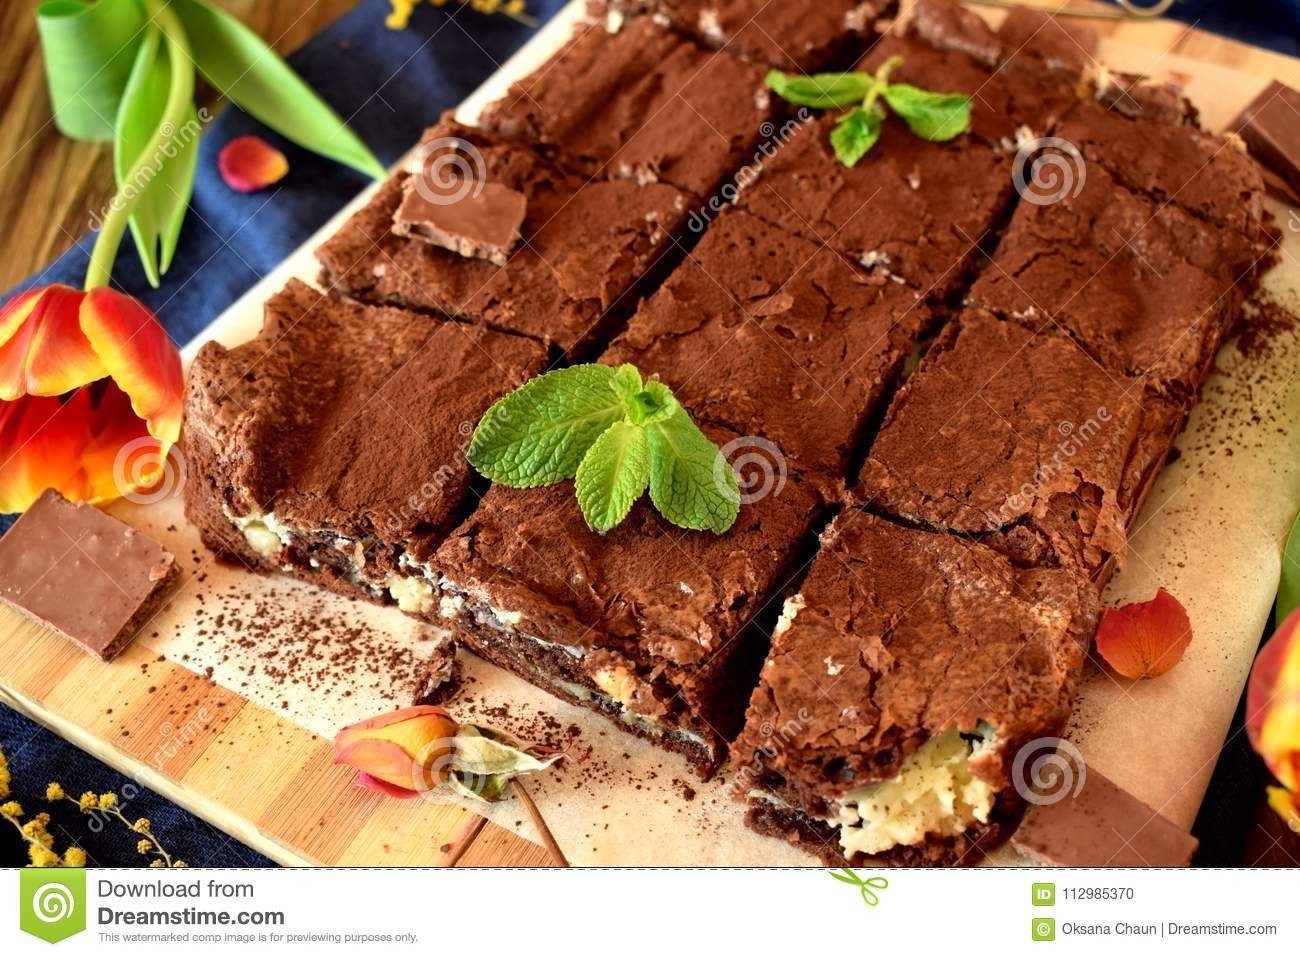 Brownie square pieces covered with cacao powder